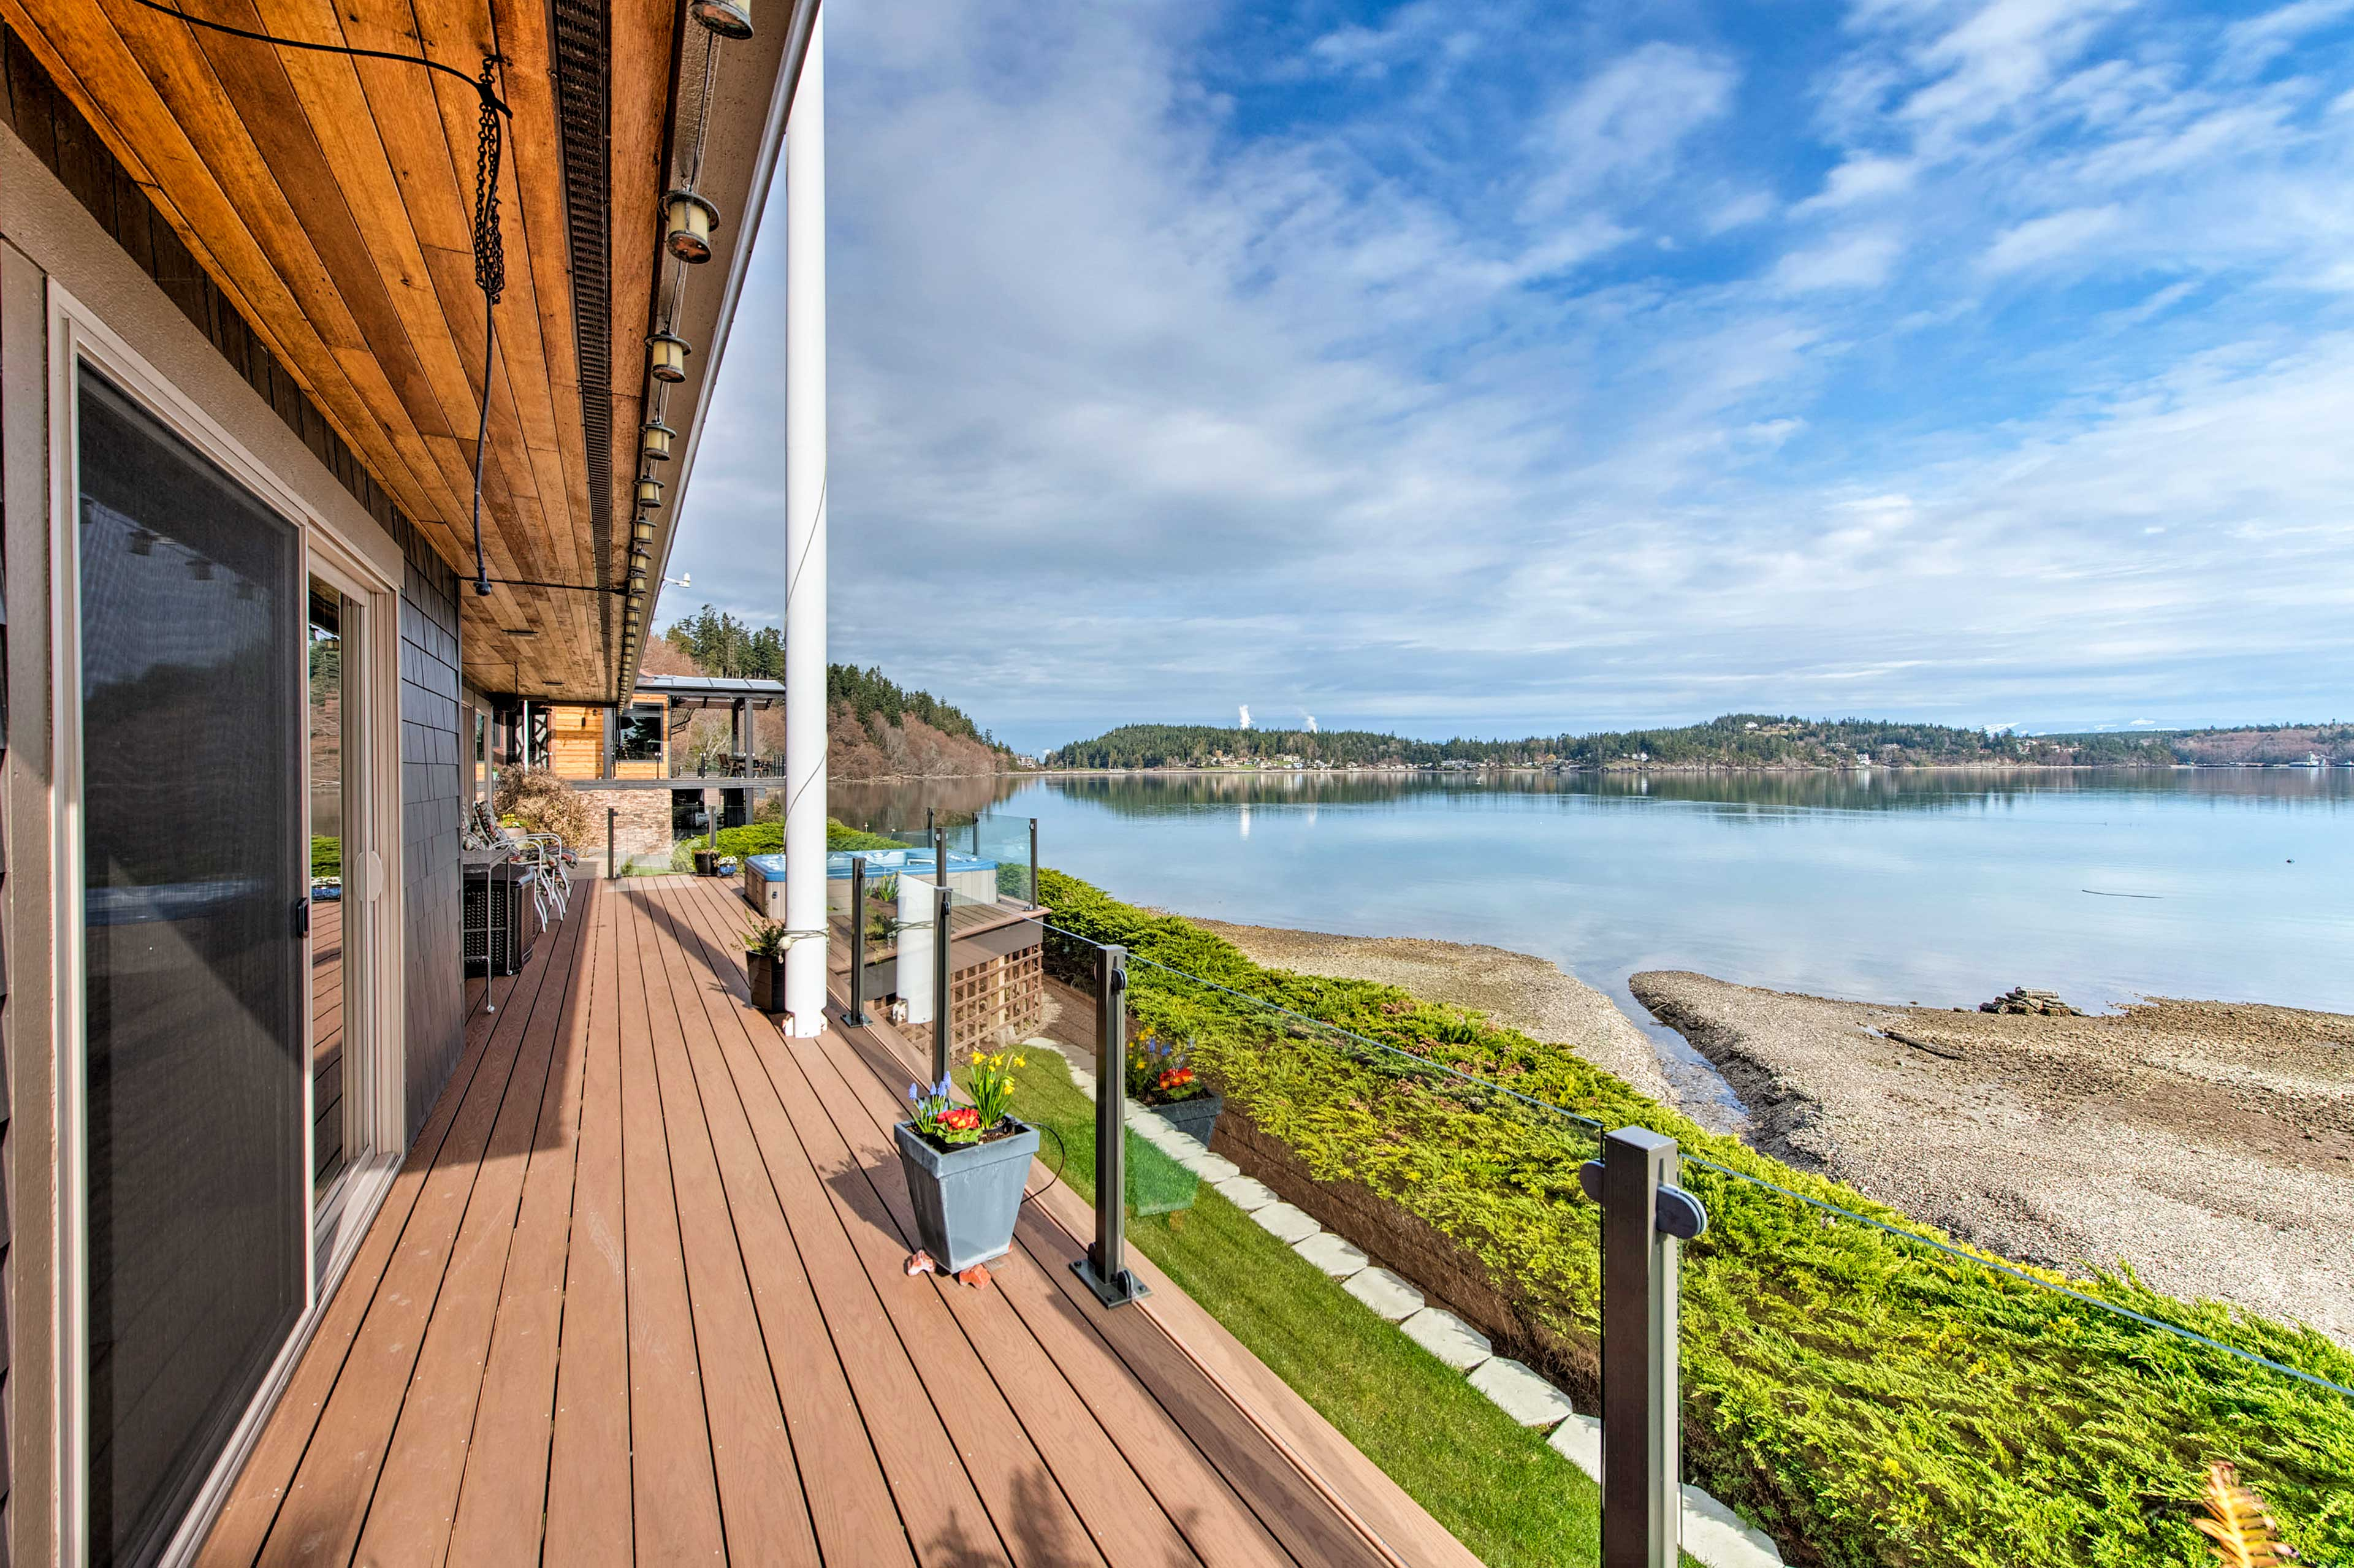 Glass walls enclose the spacious wraparound deck and provide a sleek look.